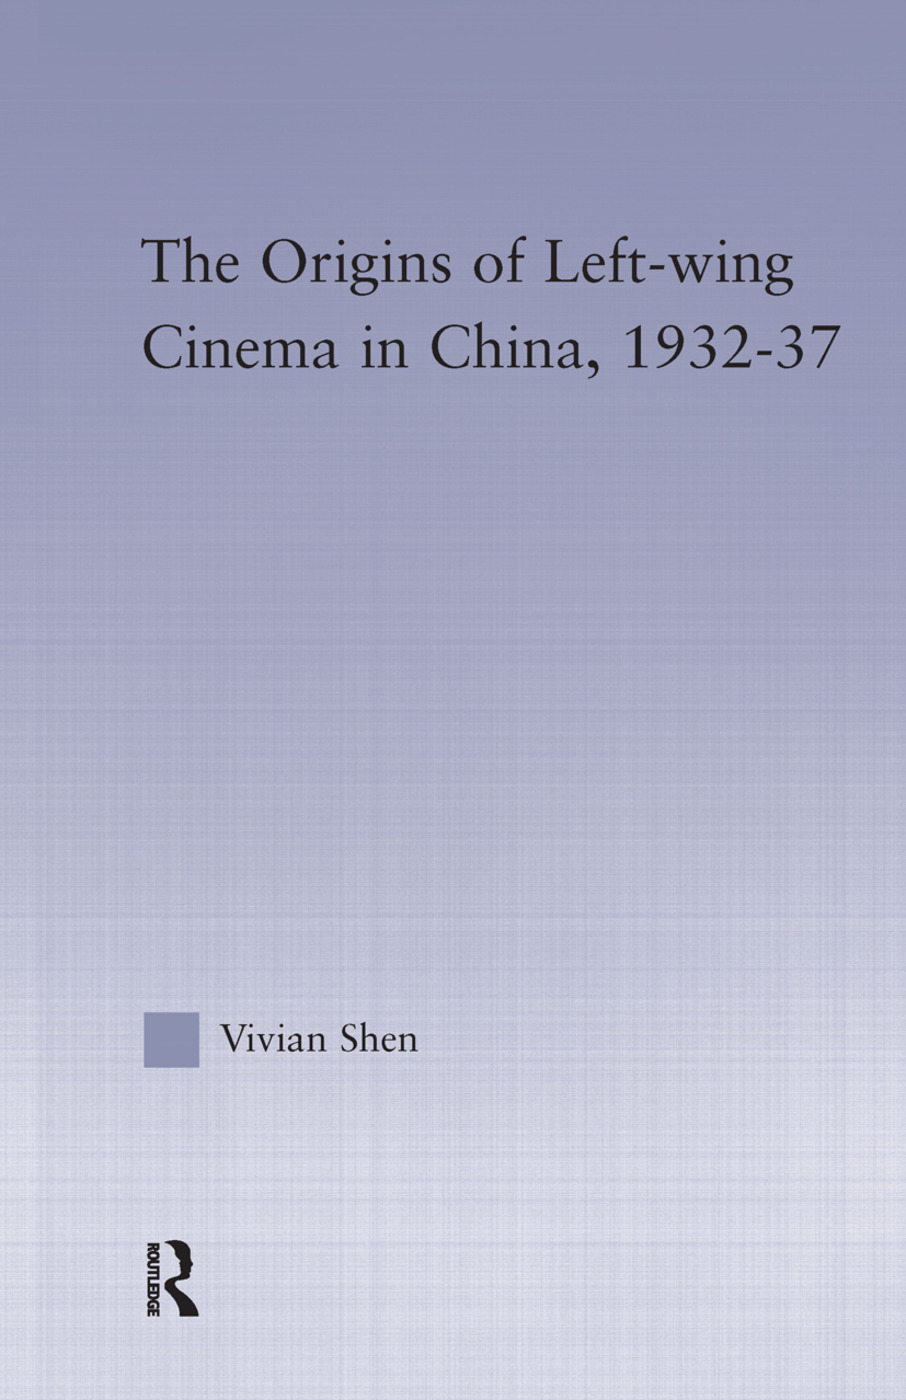 Origins of Left-Wing Cinema in China 2012 by Vivian Shen